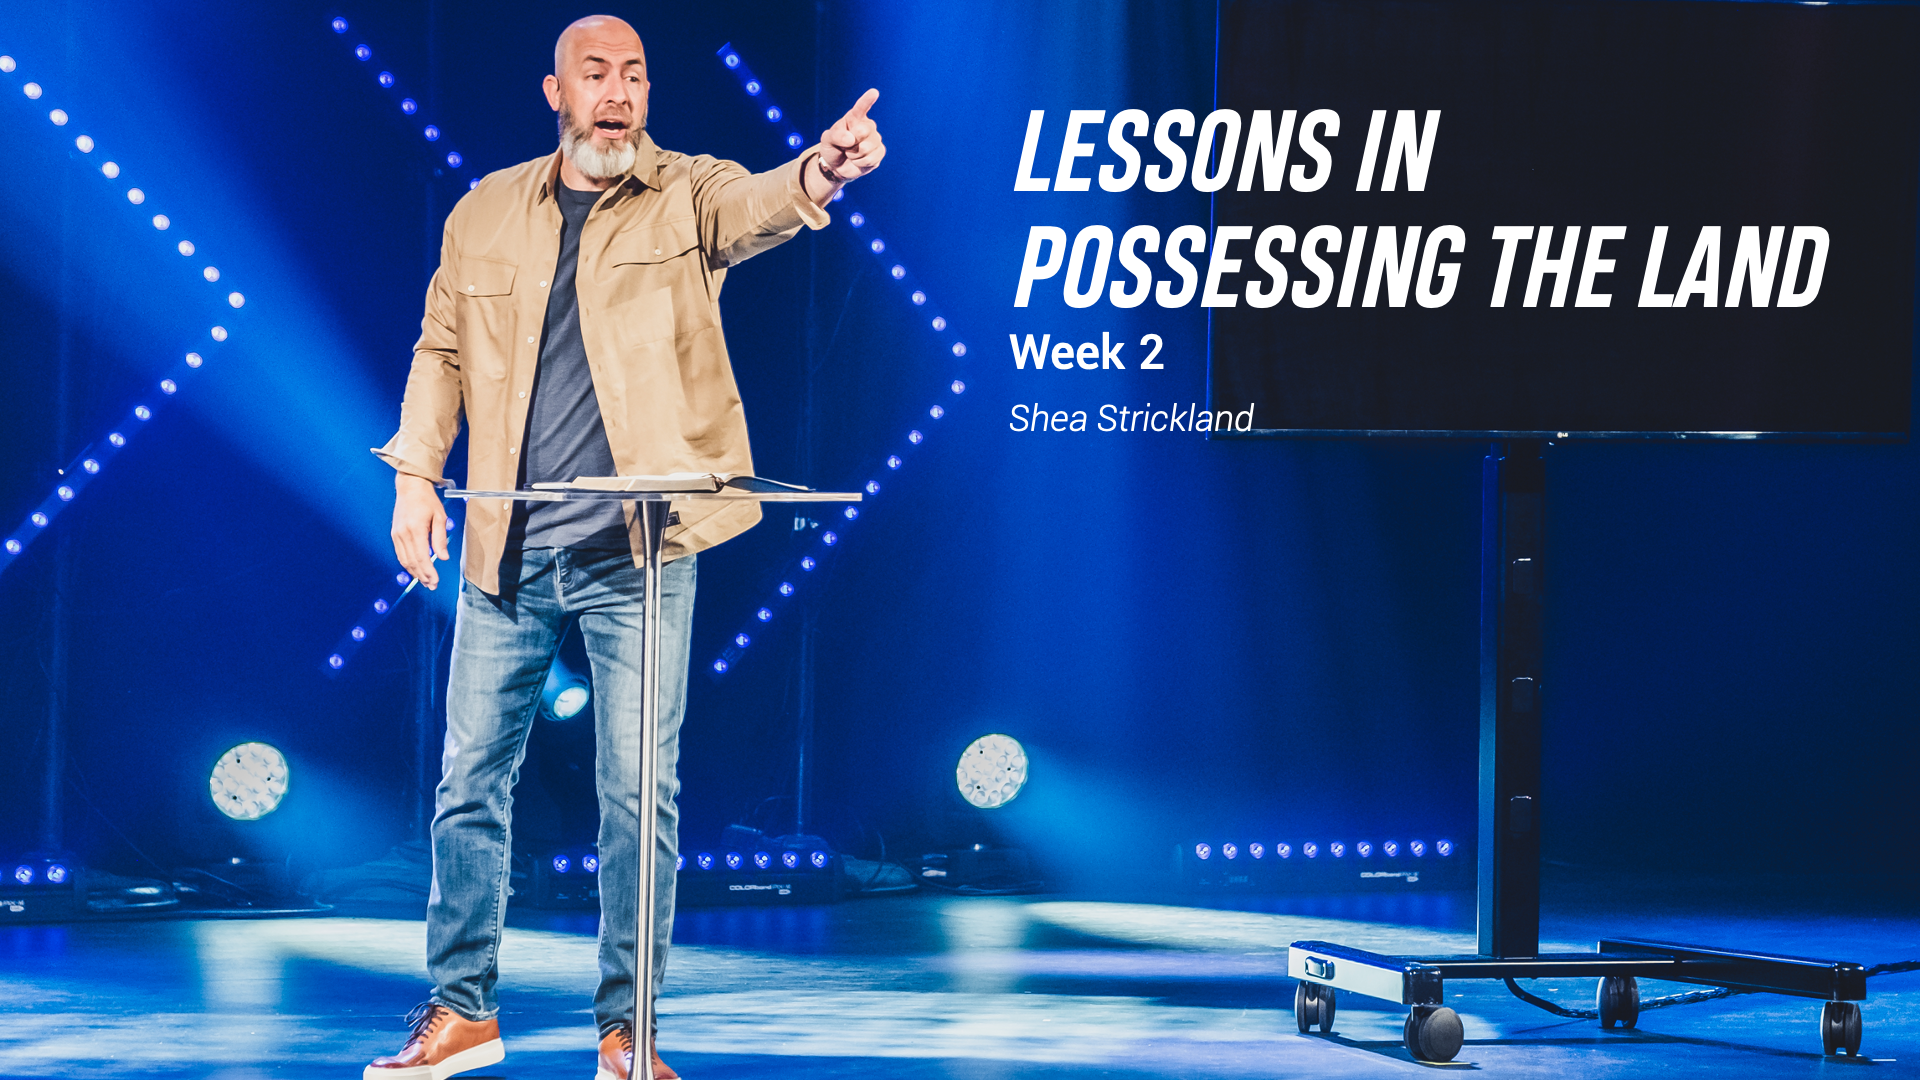 Lessons in Possessing the Land - Week 2 Image